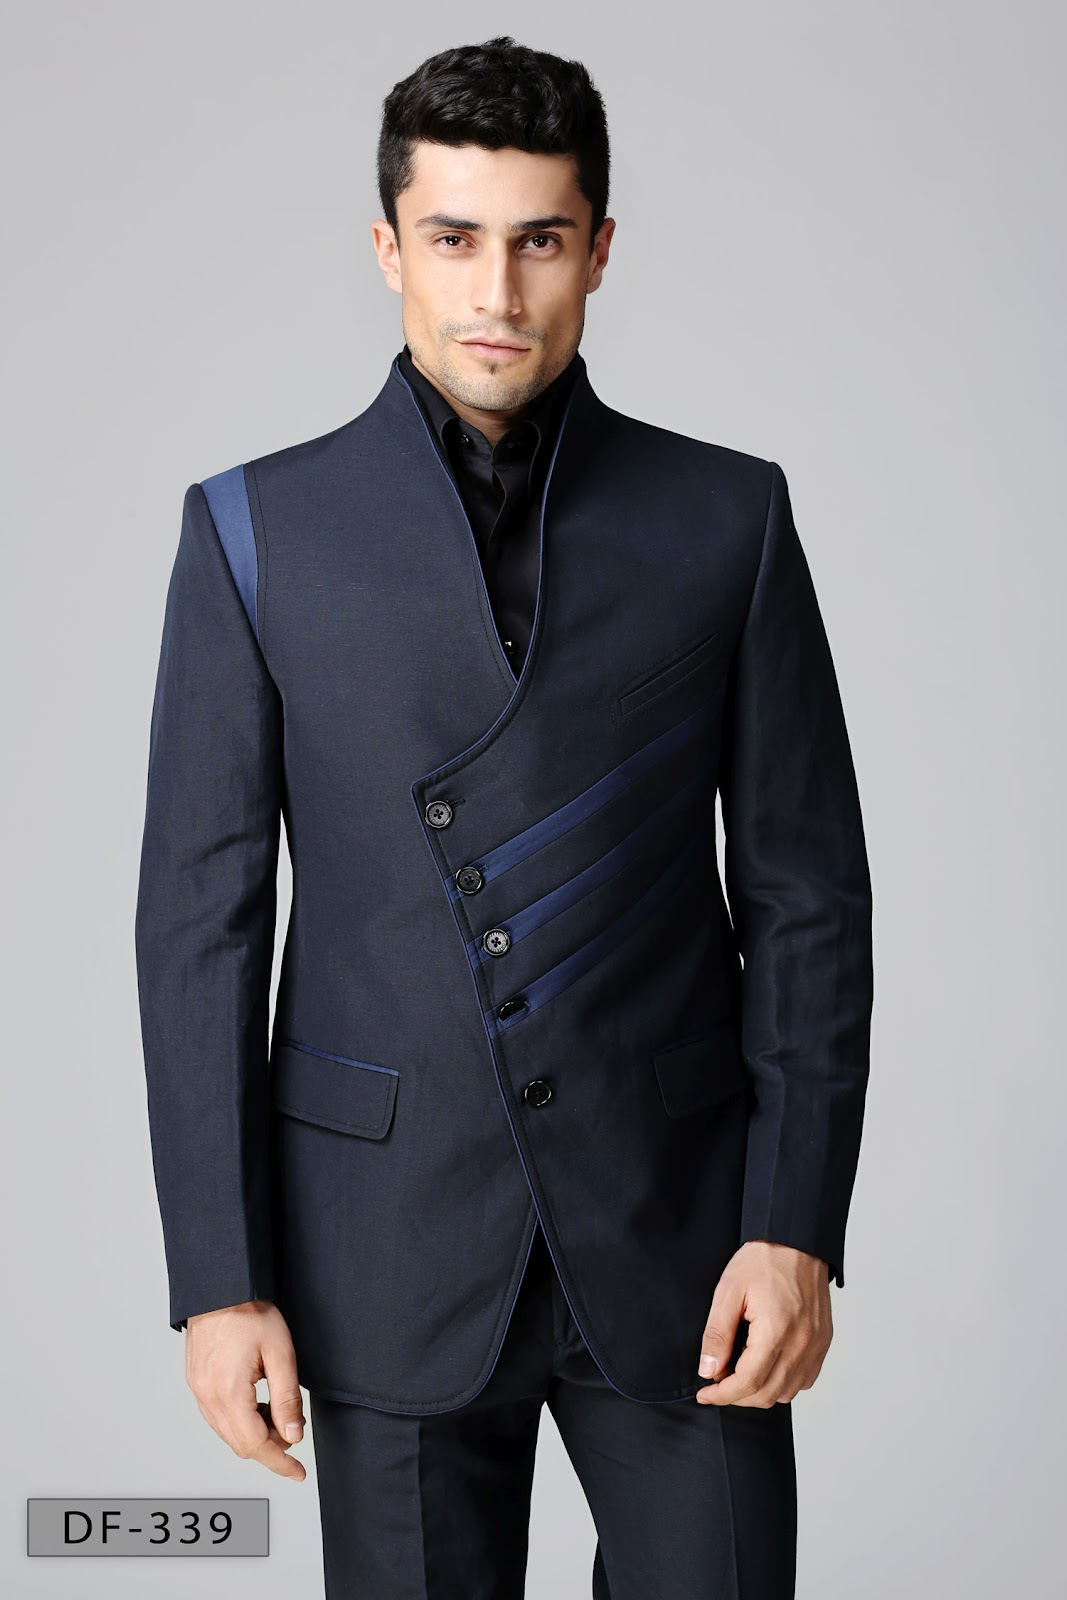 Modern 3 Piece Suits for Men | Three Piece Suit | Indian ...